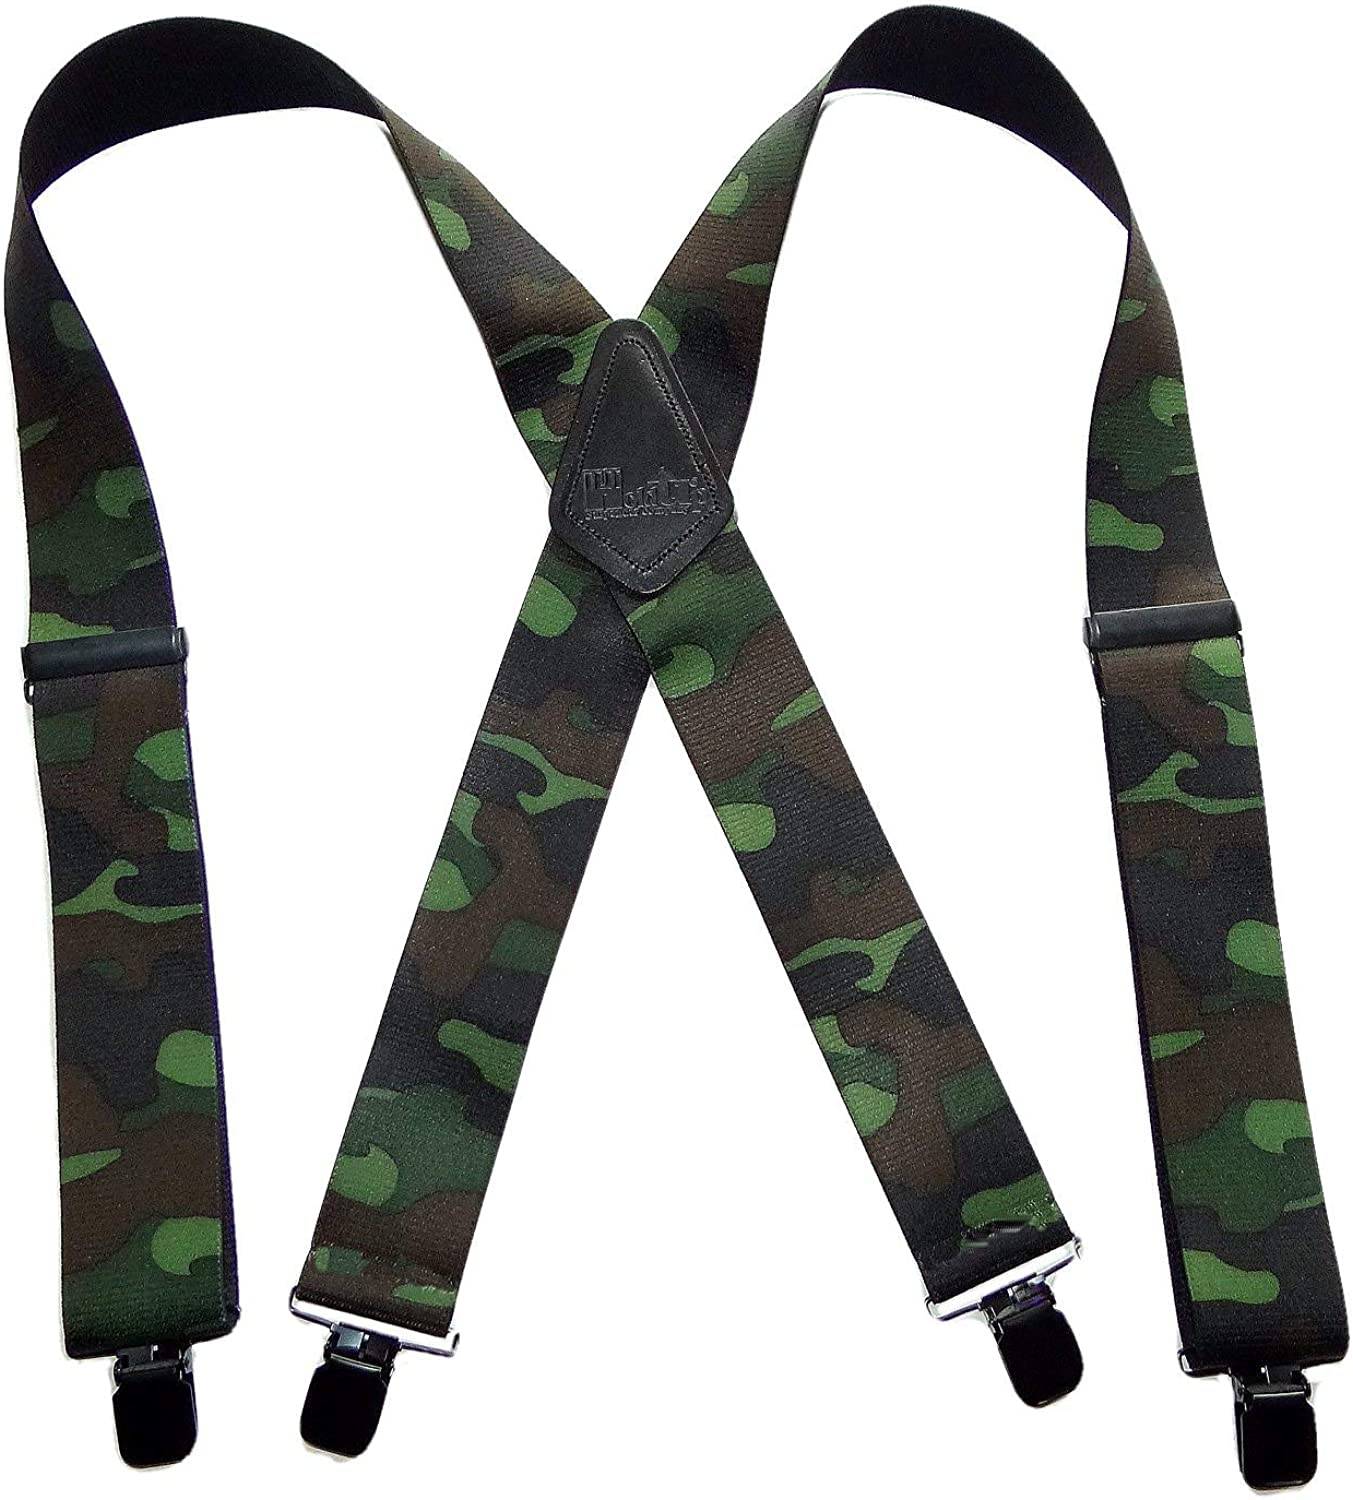 Holdup Brand Woodland Camouflage Hunting Suspenders Lowest price challenge with jumbo price P